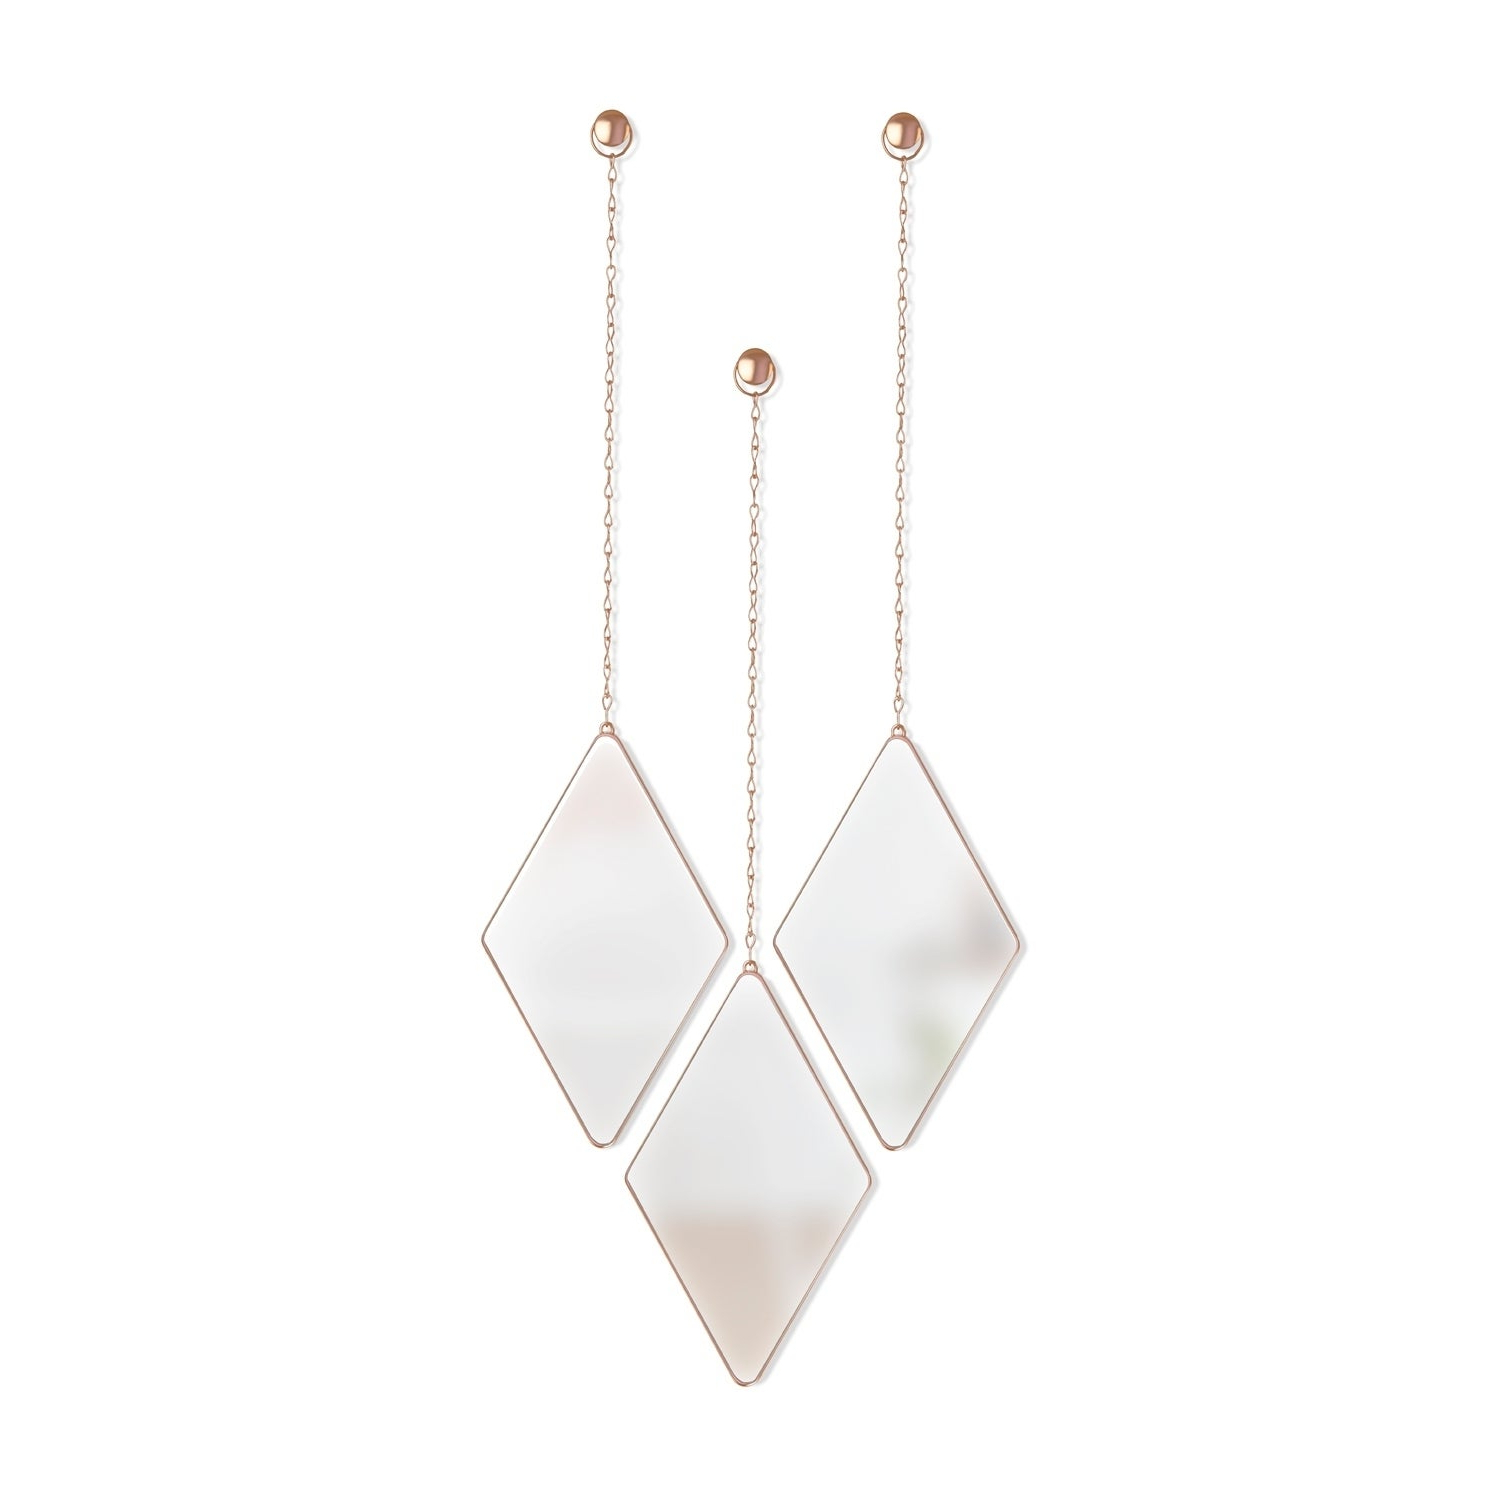 3 Piece Dima Hanging Modern & Contemporary Mirror Sets Intended For Current Umbra Dima Mirror (Set Of 3) (View 4 of 20)